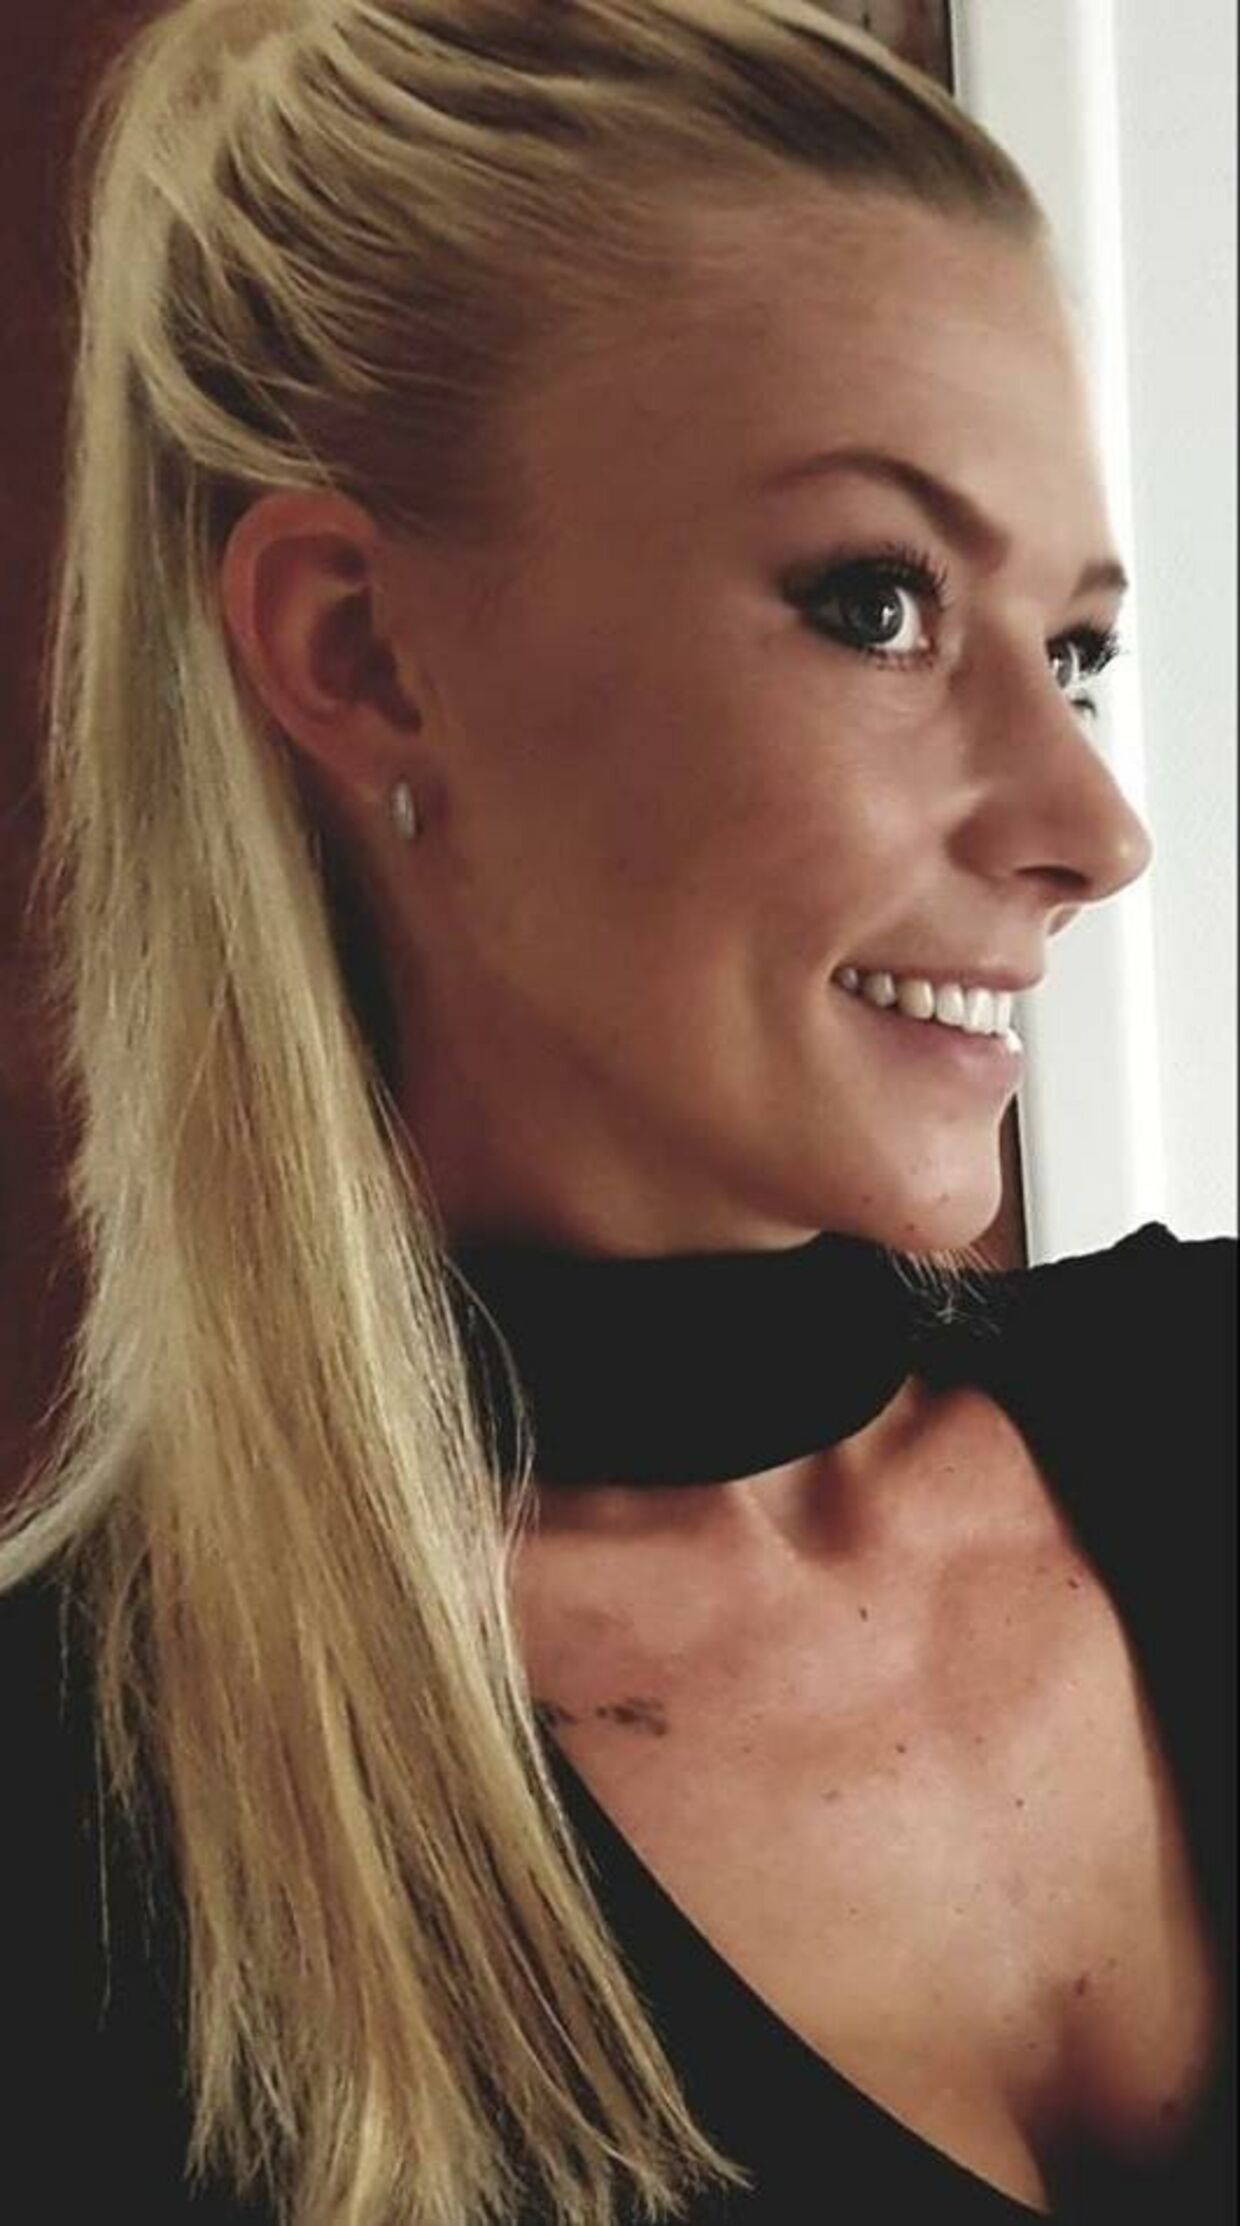 Images Lise Olsen nudes (69 foto and video), Topless, Paparazzi, Selfie, underwear 2017